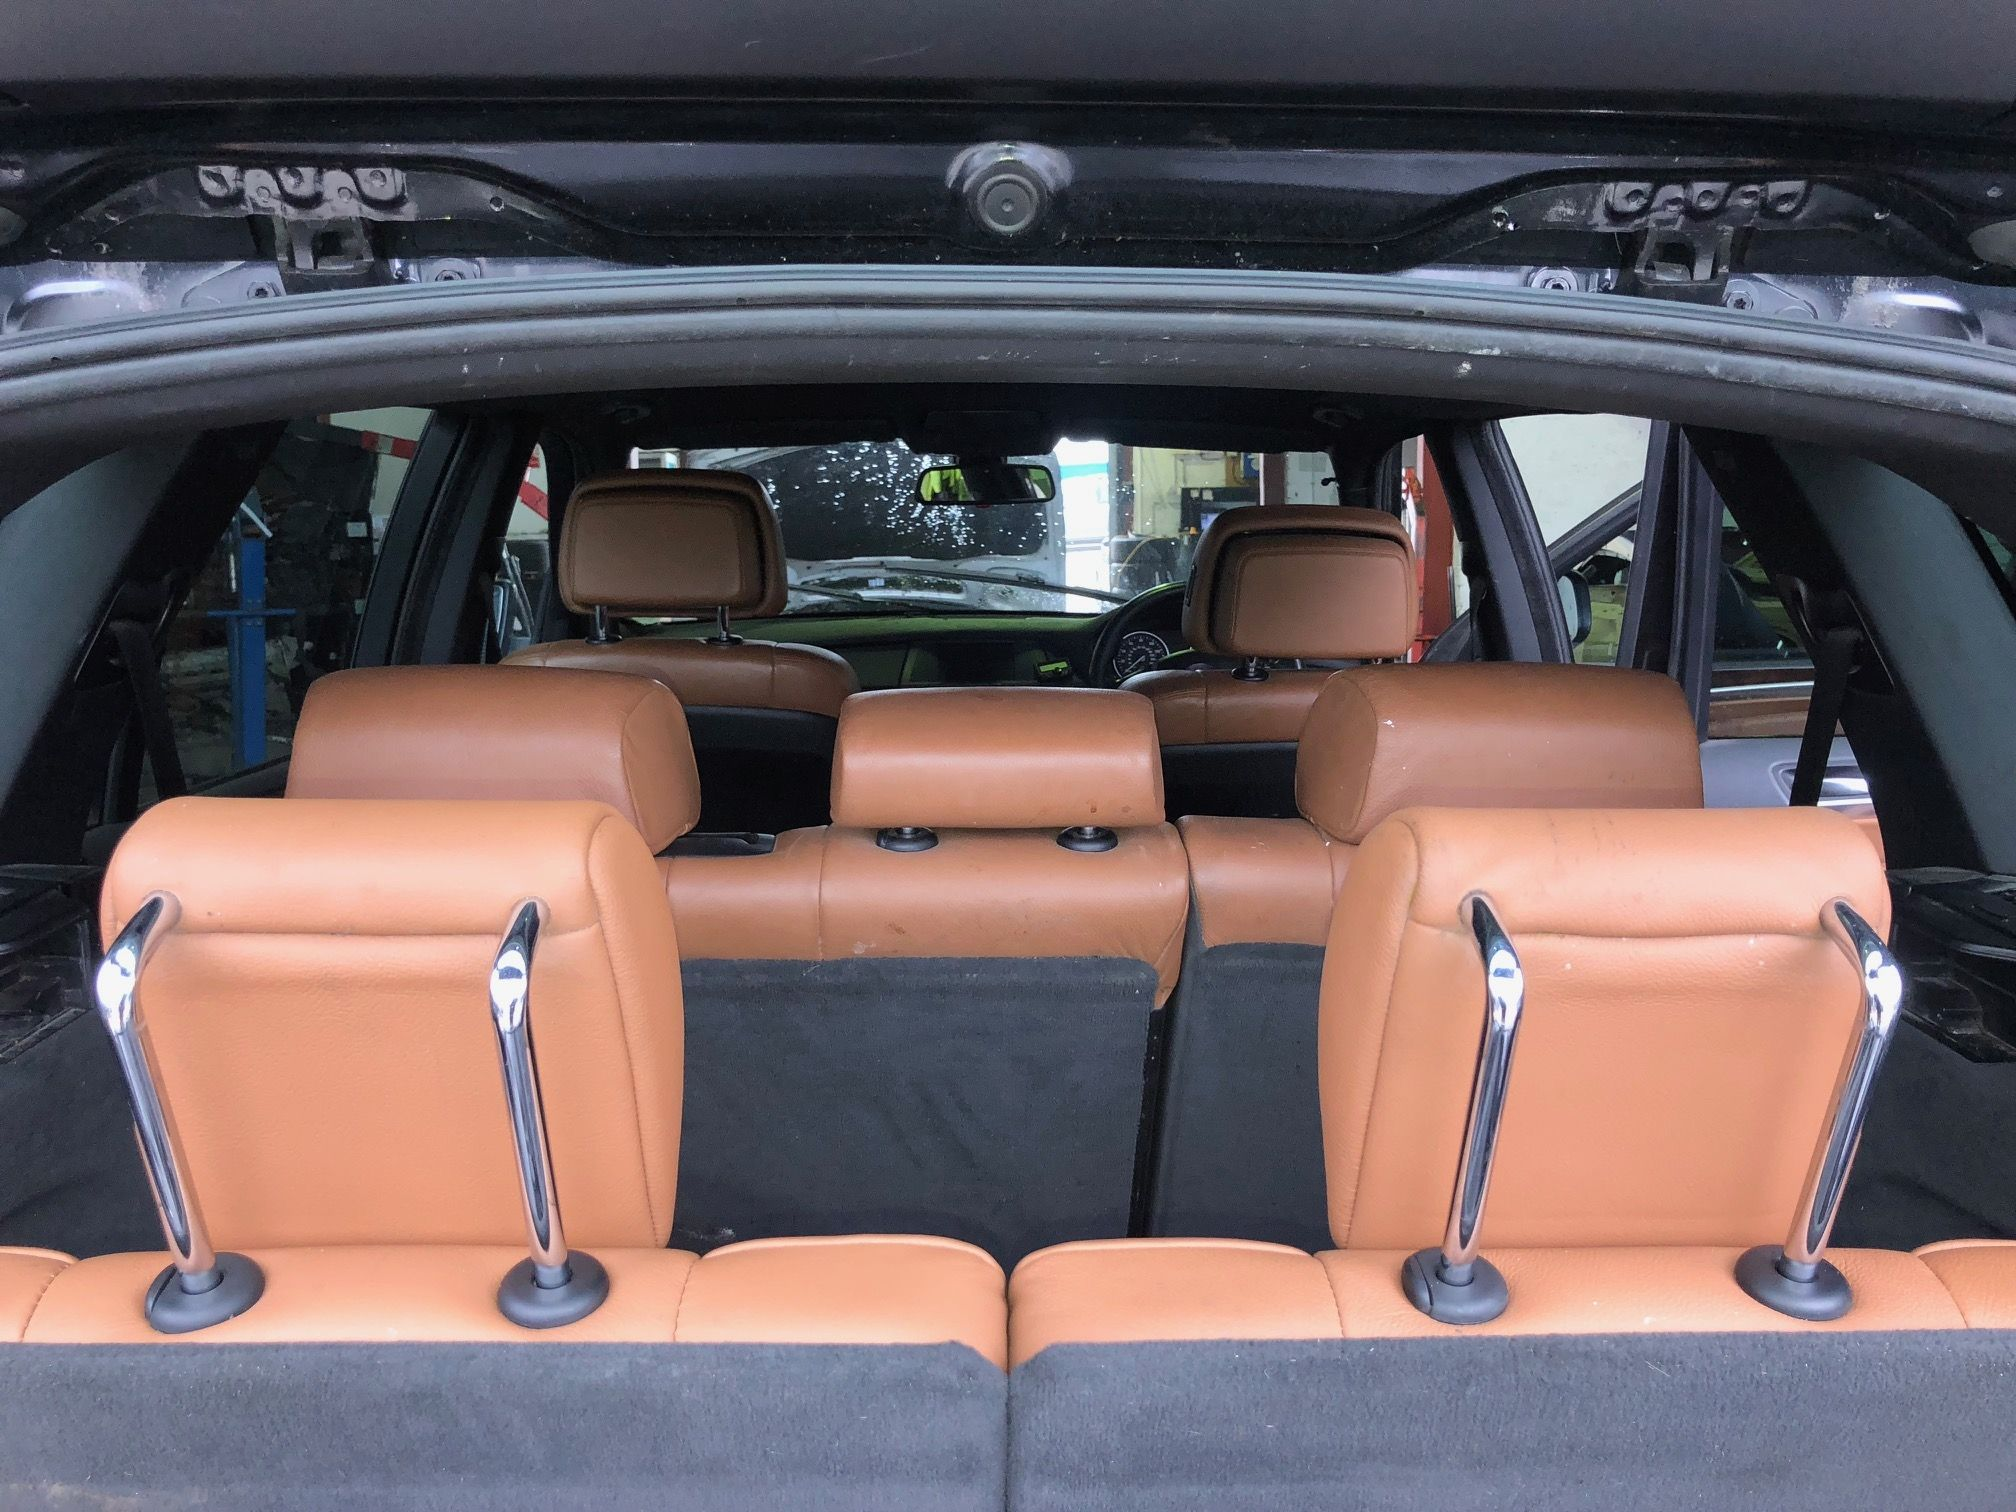 Bmw X5 E70 7 Seater Interior M Sport Leather Seats Door Cards Nevada Saddle Brown Seat 262